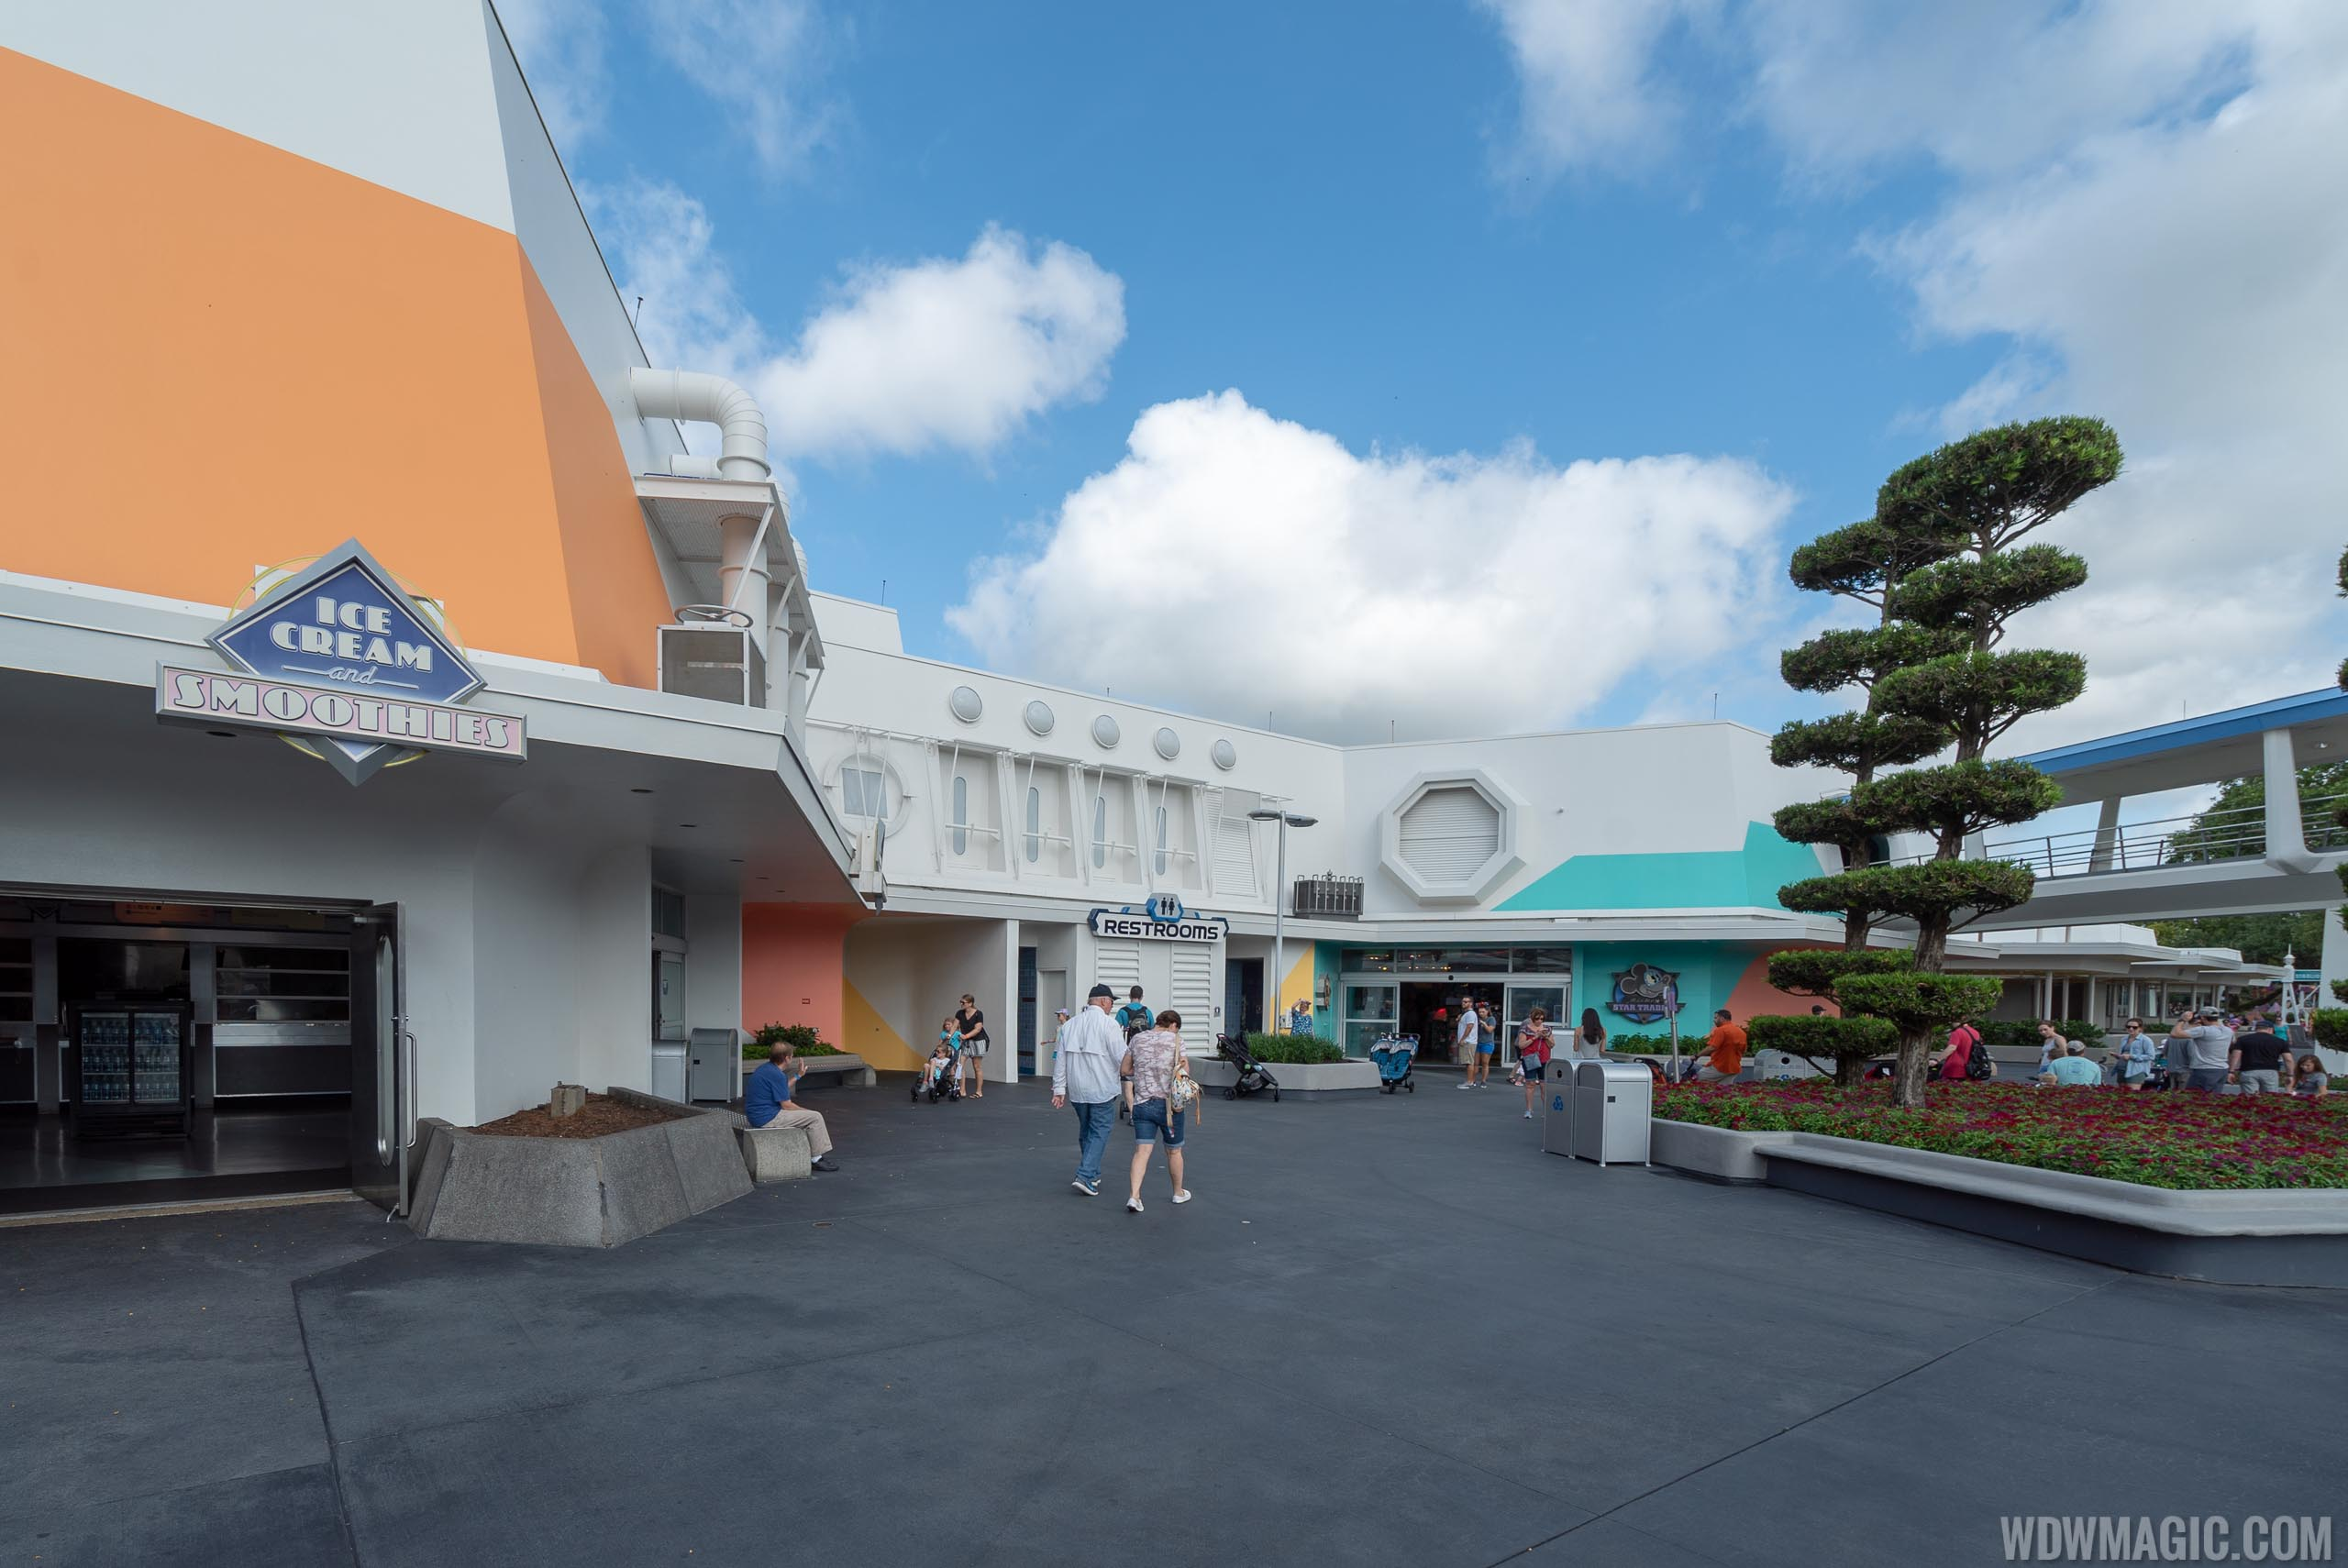 Tomorrowland paint changes around Mickey's Star Traders - May 2019